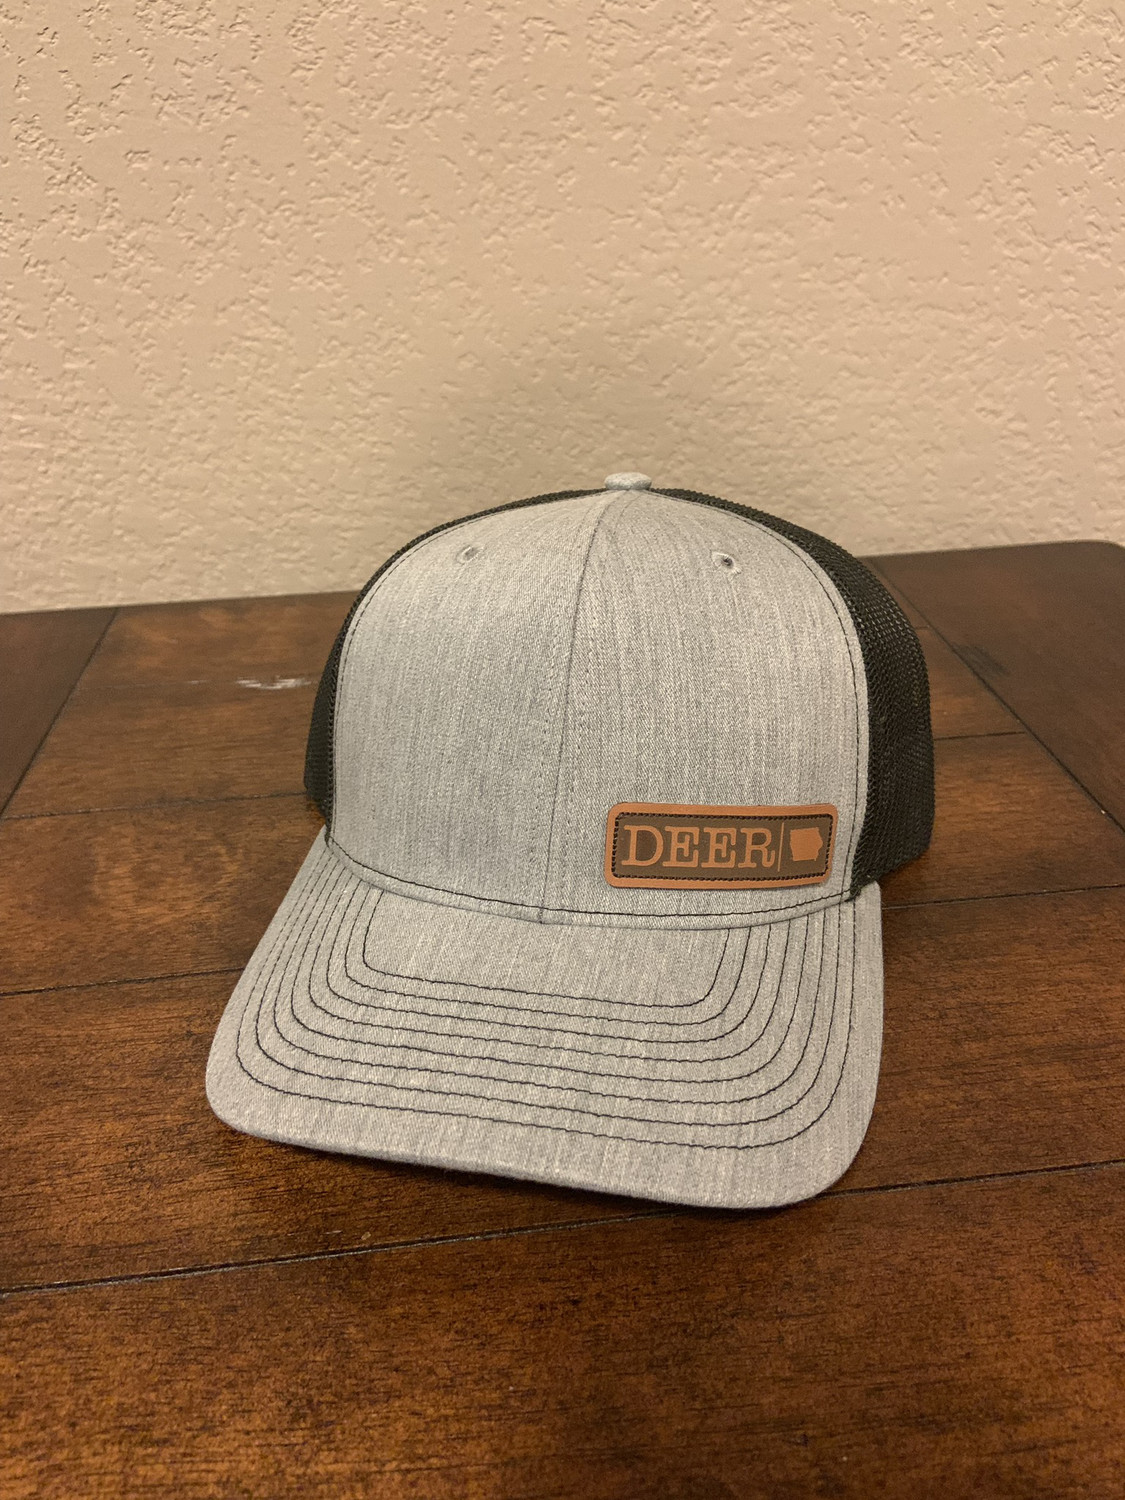 Gray DEER Patch Hat